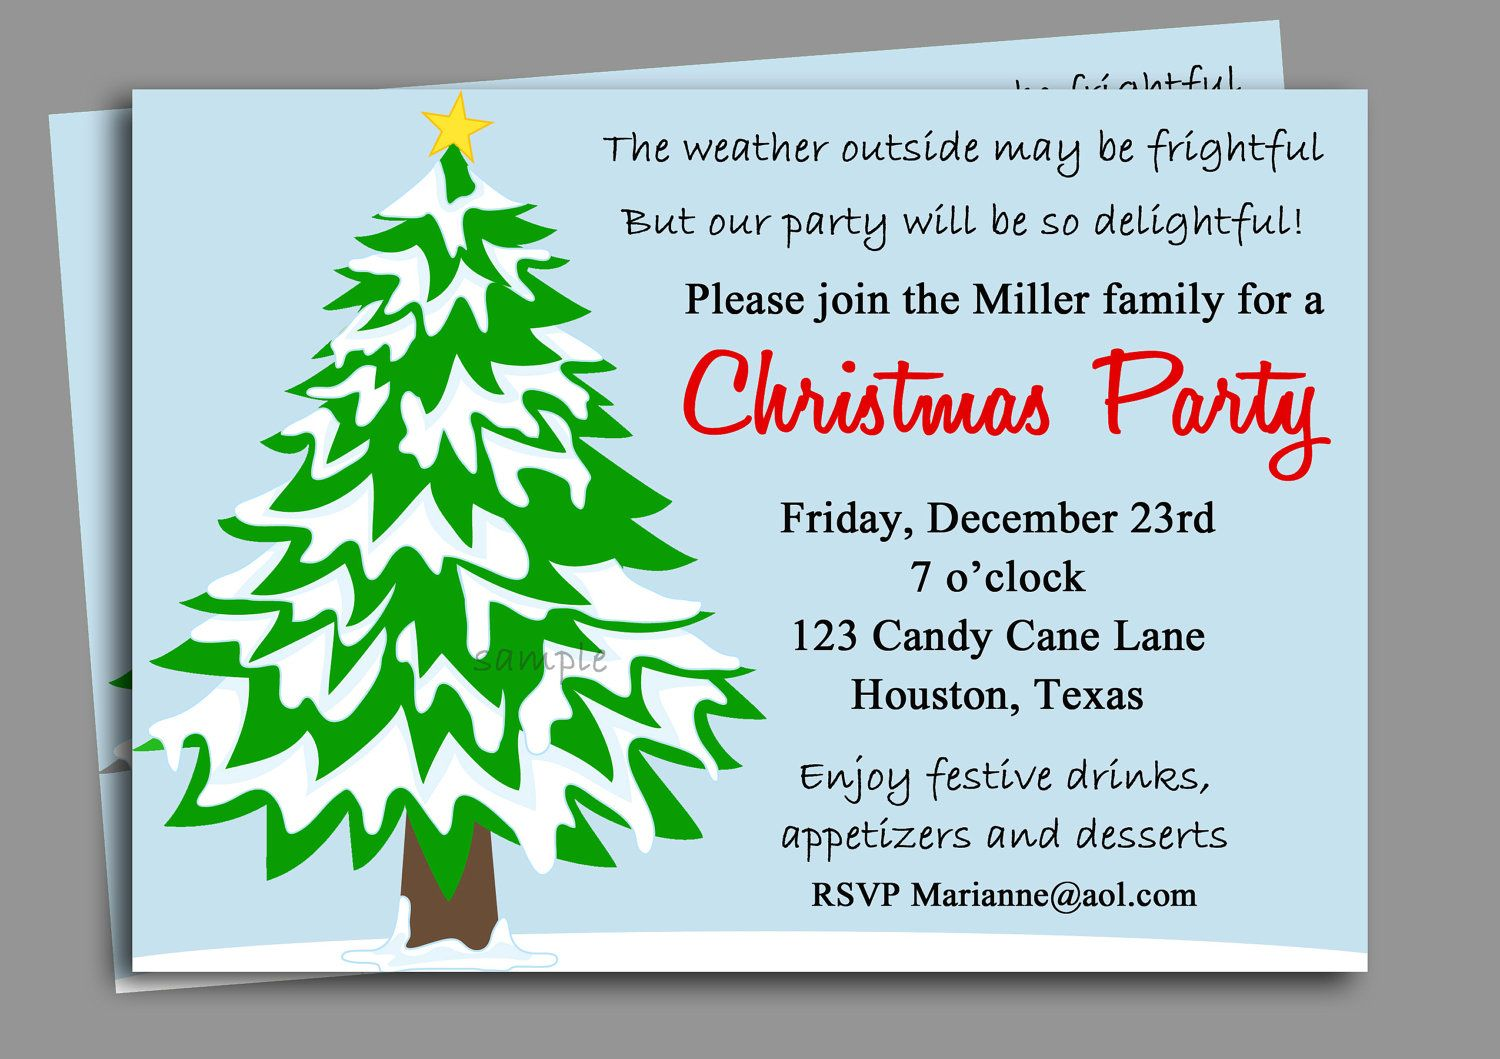 Nice Christmas Party Invitation Wording Ideas Part - 8: Christmas Party Invitation Printable - Winter Wonderland By ThatPartyChick  On Etsy